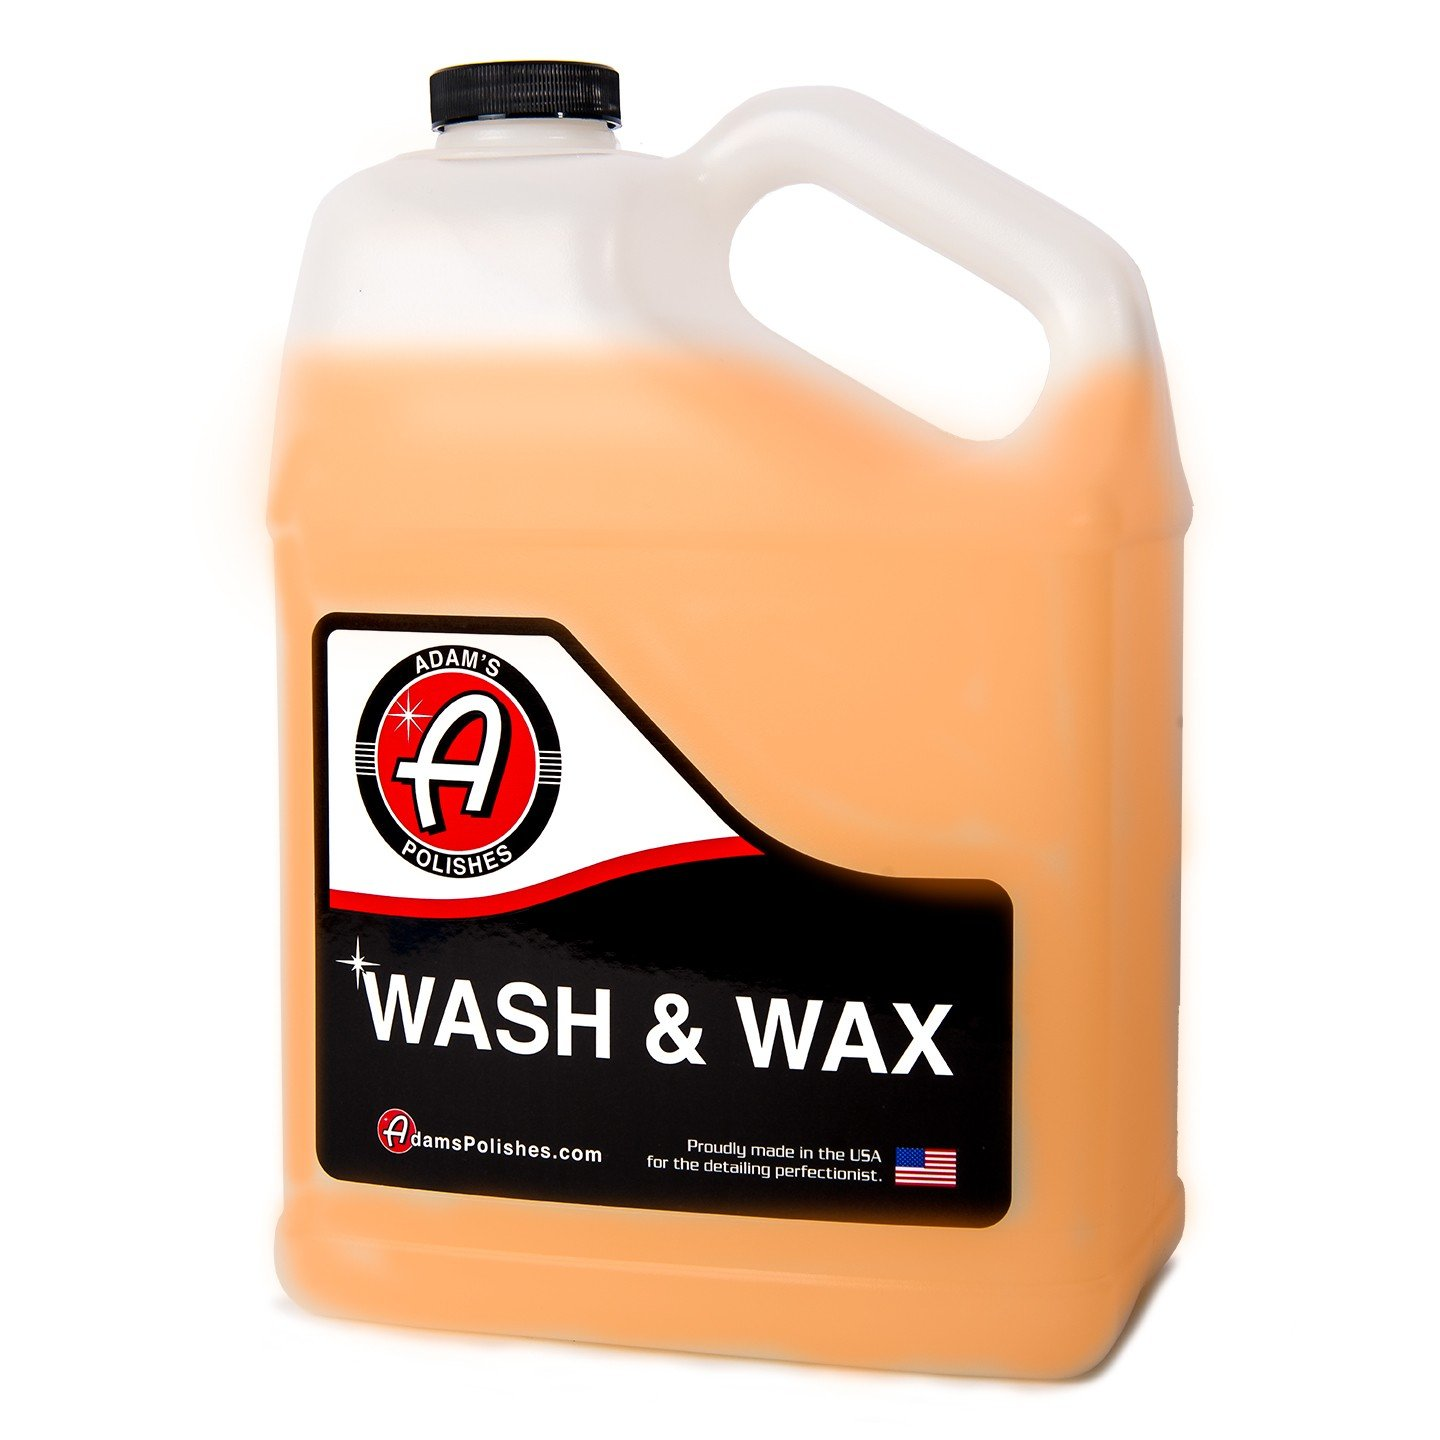 Adam's Wash & Wax - Concentrated, High Performance, pH Neutral Soap Blend That Lubricates, Shines, and Protects - Special Polymers Add a Just-Waxed, High Gloss Finish (1 Gallon)